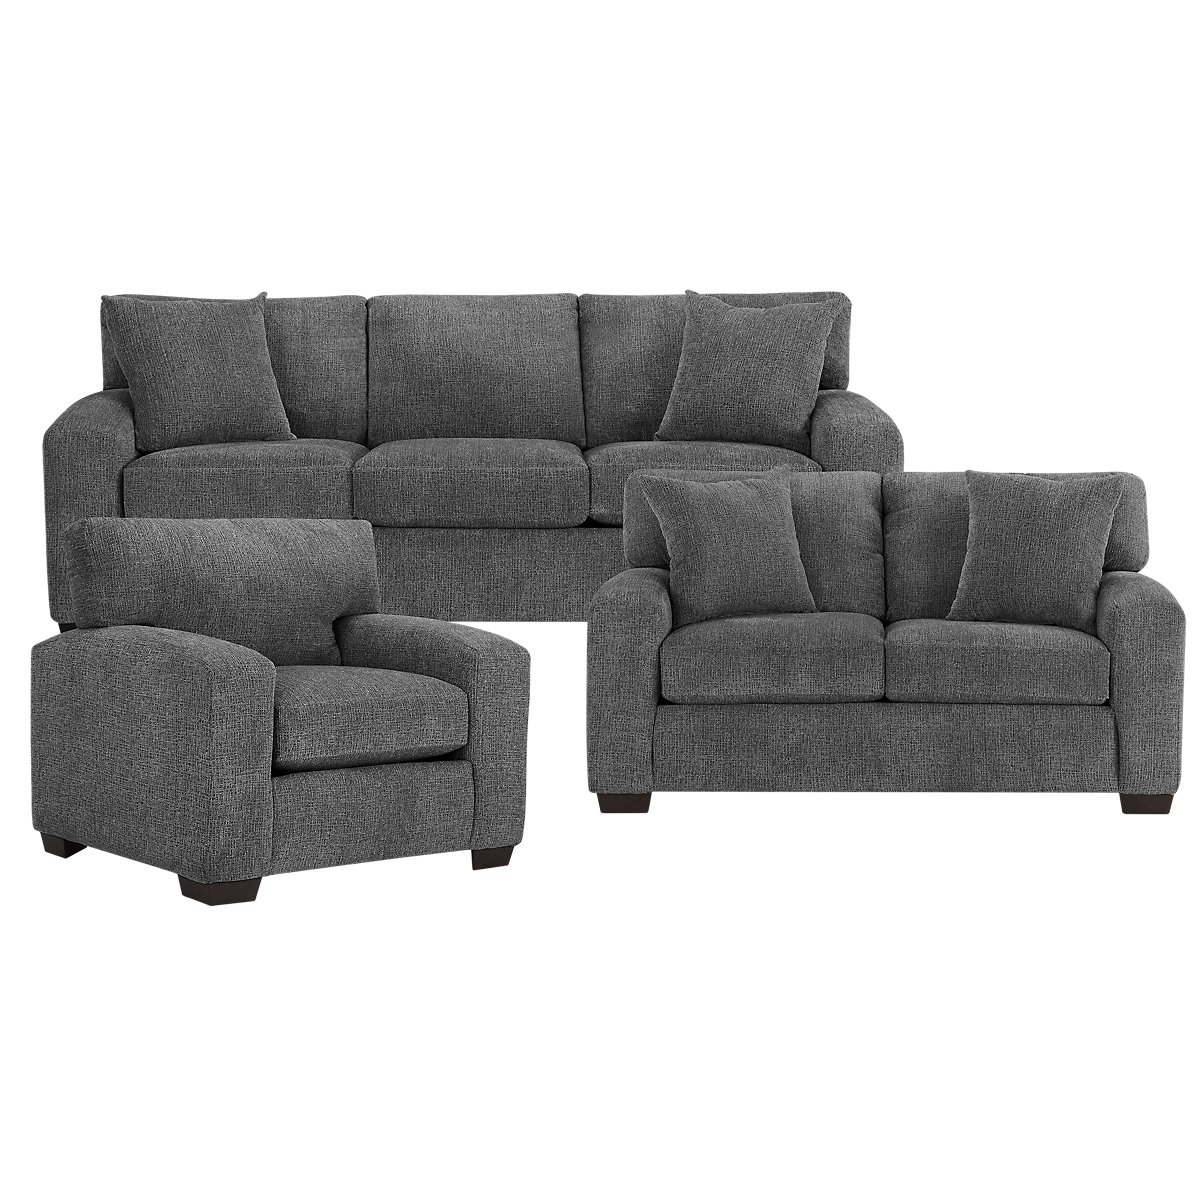 Microfiber Living Room Chairs City Furniture Living Room Furniture Living Room Sets